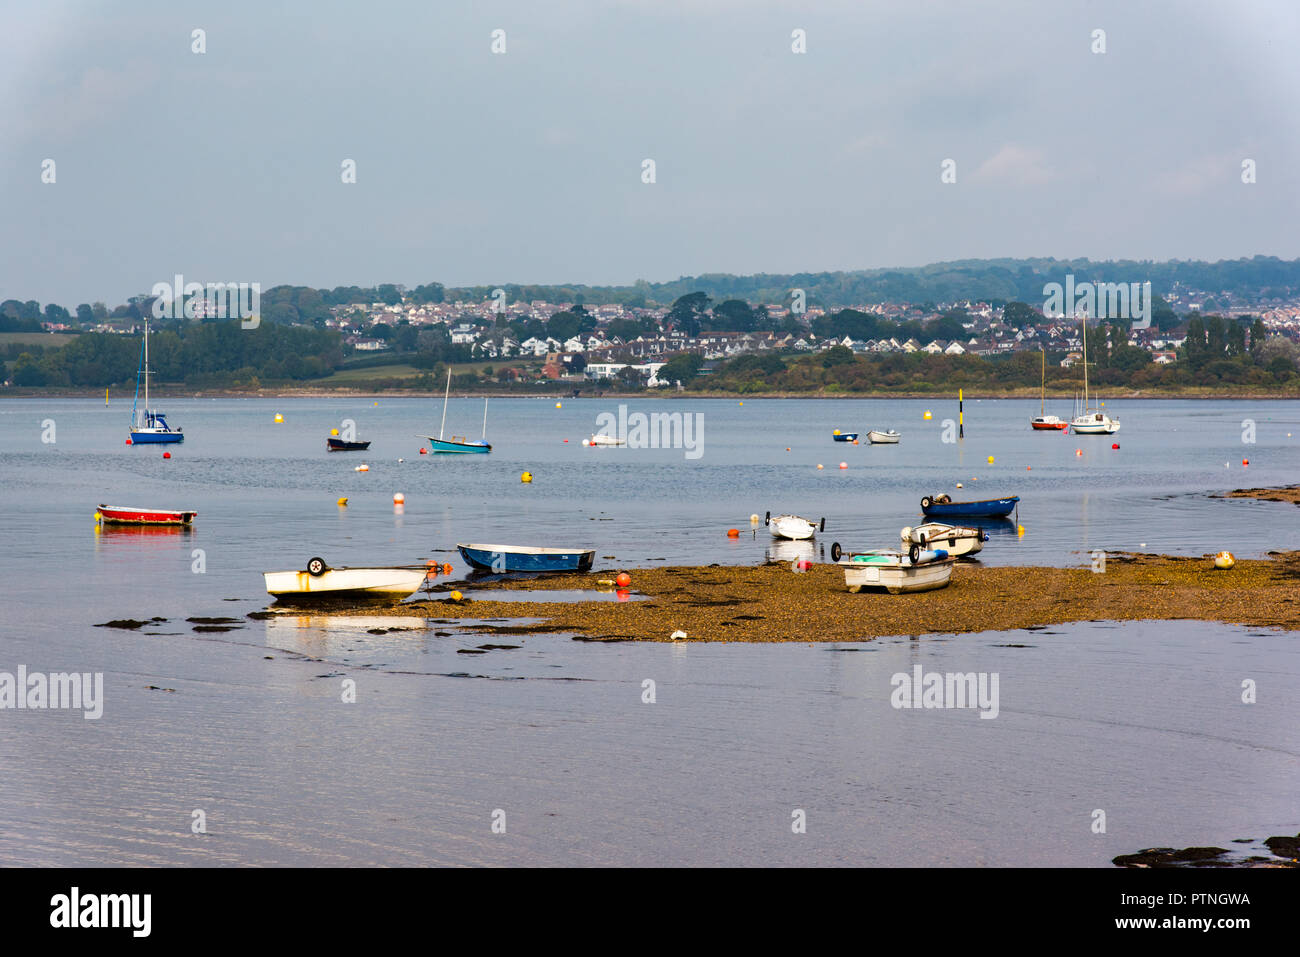 Shelly Beach and the River Exe Estuary, Exmouth, Devon, UK. - Stock Image